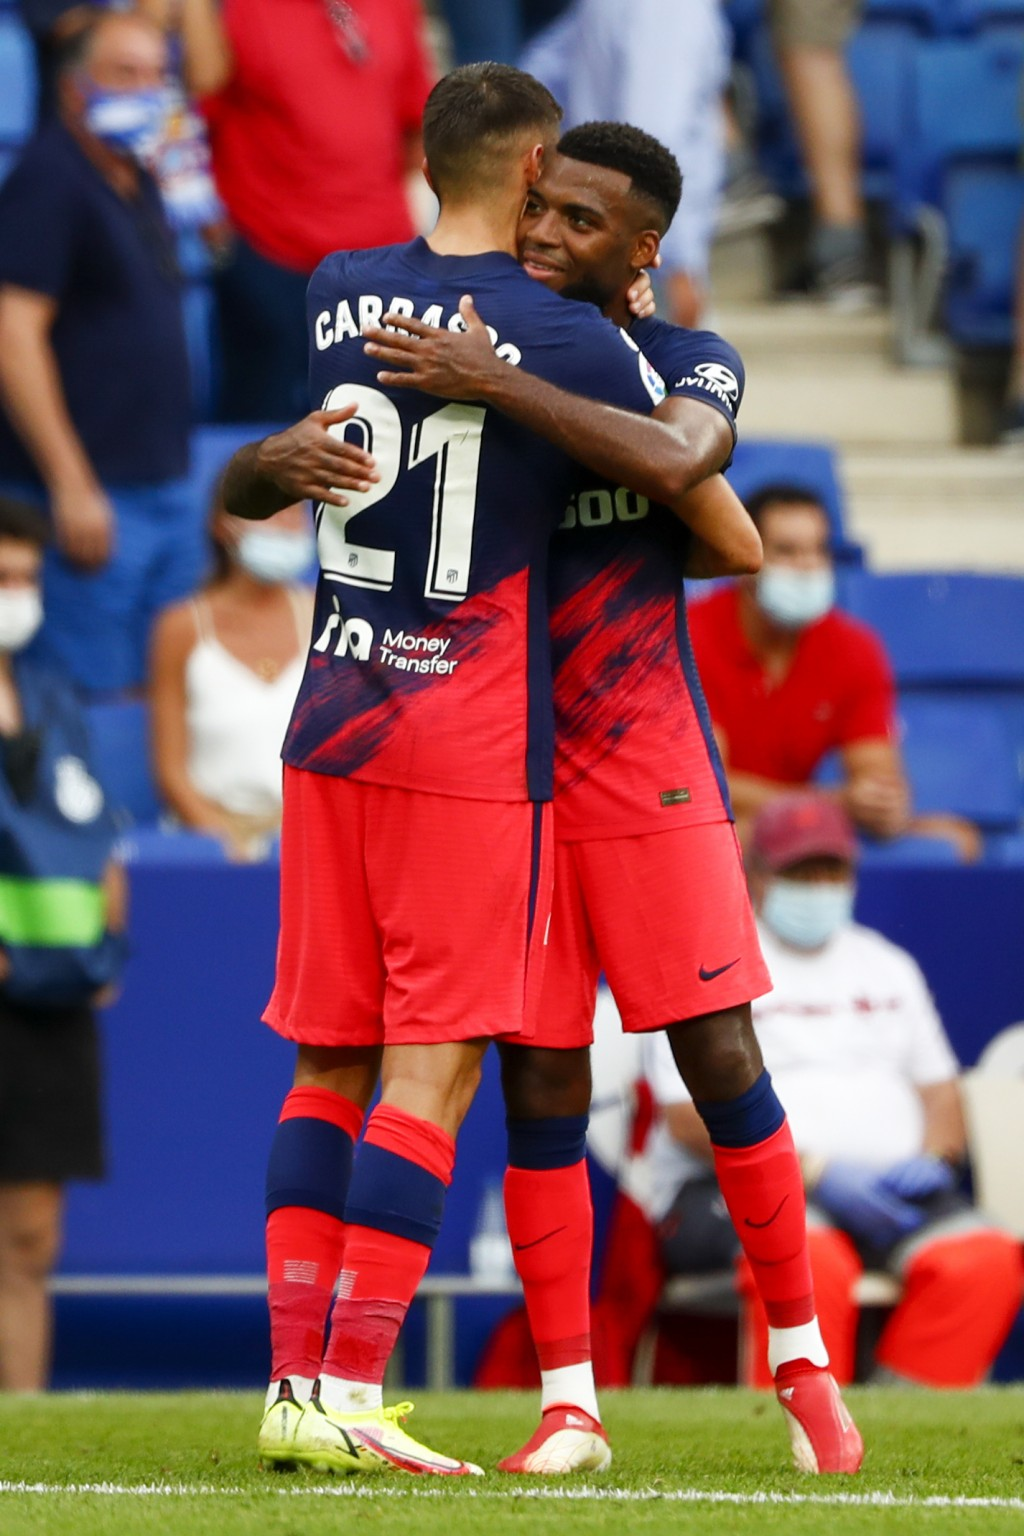 Atletico Madrid's Thomas Lemar, right, celebrates with his teammate Atletico Madrid's Yannick Carrasco after scoring his side's second goal during the...